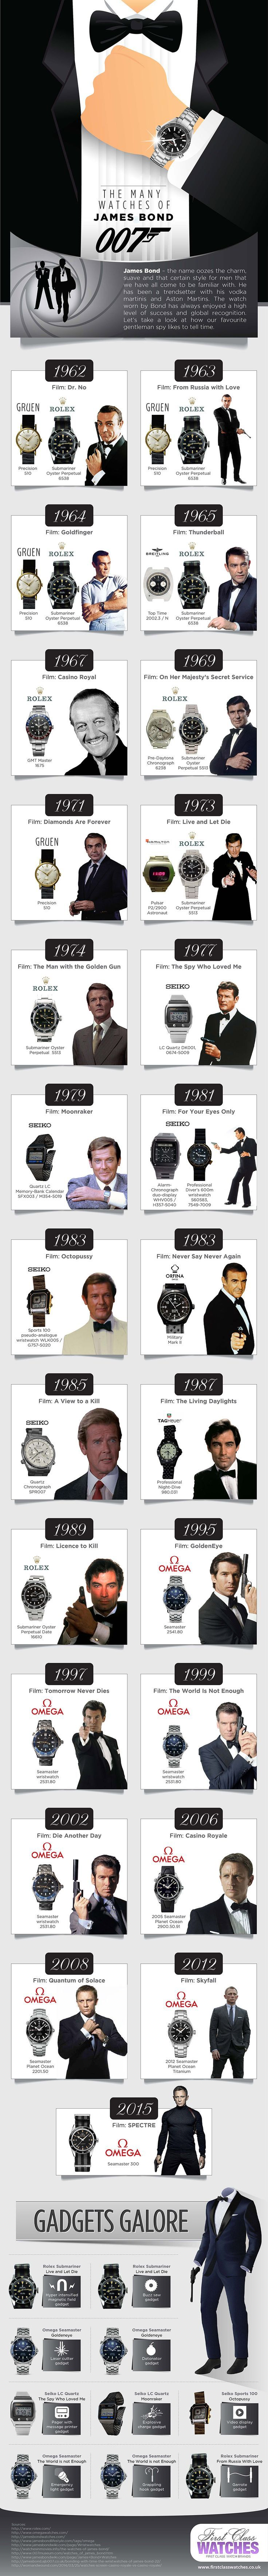 The Many Watches of James Bond - Spectre Infographic - pre owned watches, watch for mens with price, watch sale *sponsored https://www.pinterest.com/watches_watch/ https://www.pinterest.com/explore/watch/ https://www.pinterest.com/watches_watch/pocket-watch/ https://www.1stdibs.com/jewelry/section/fine-watches/